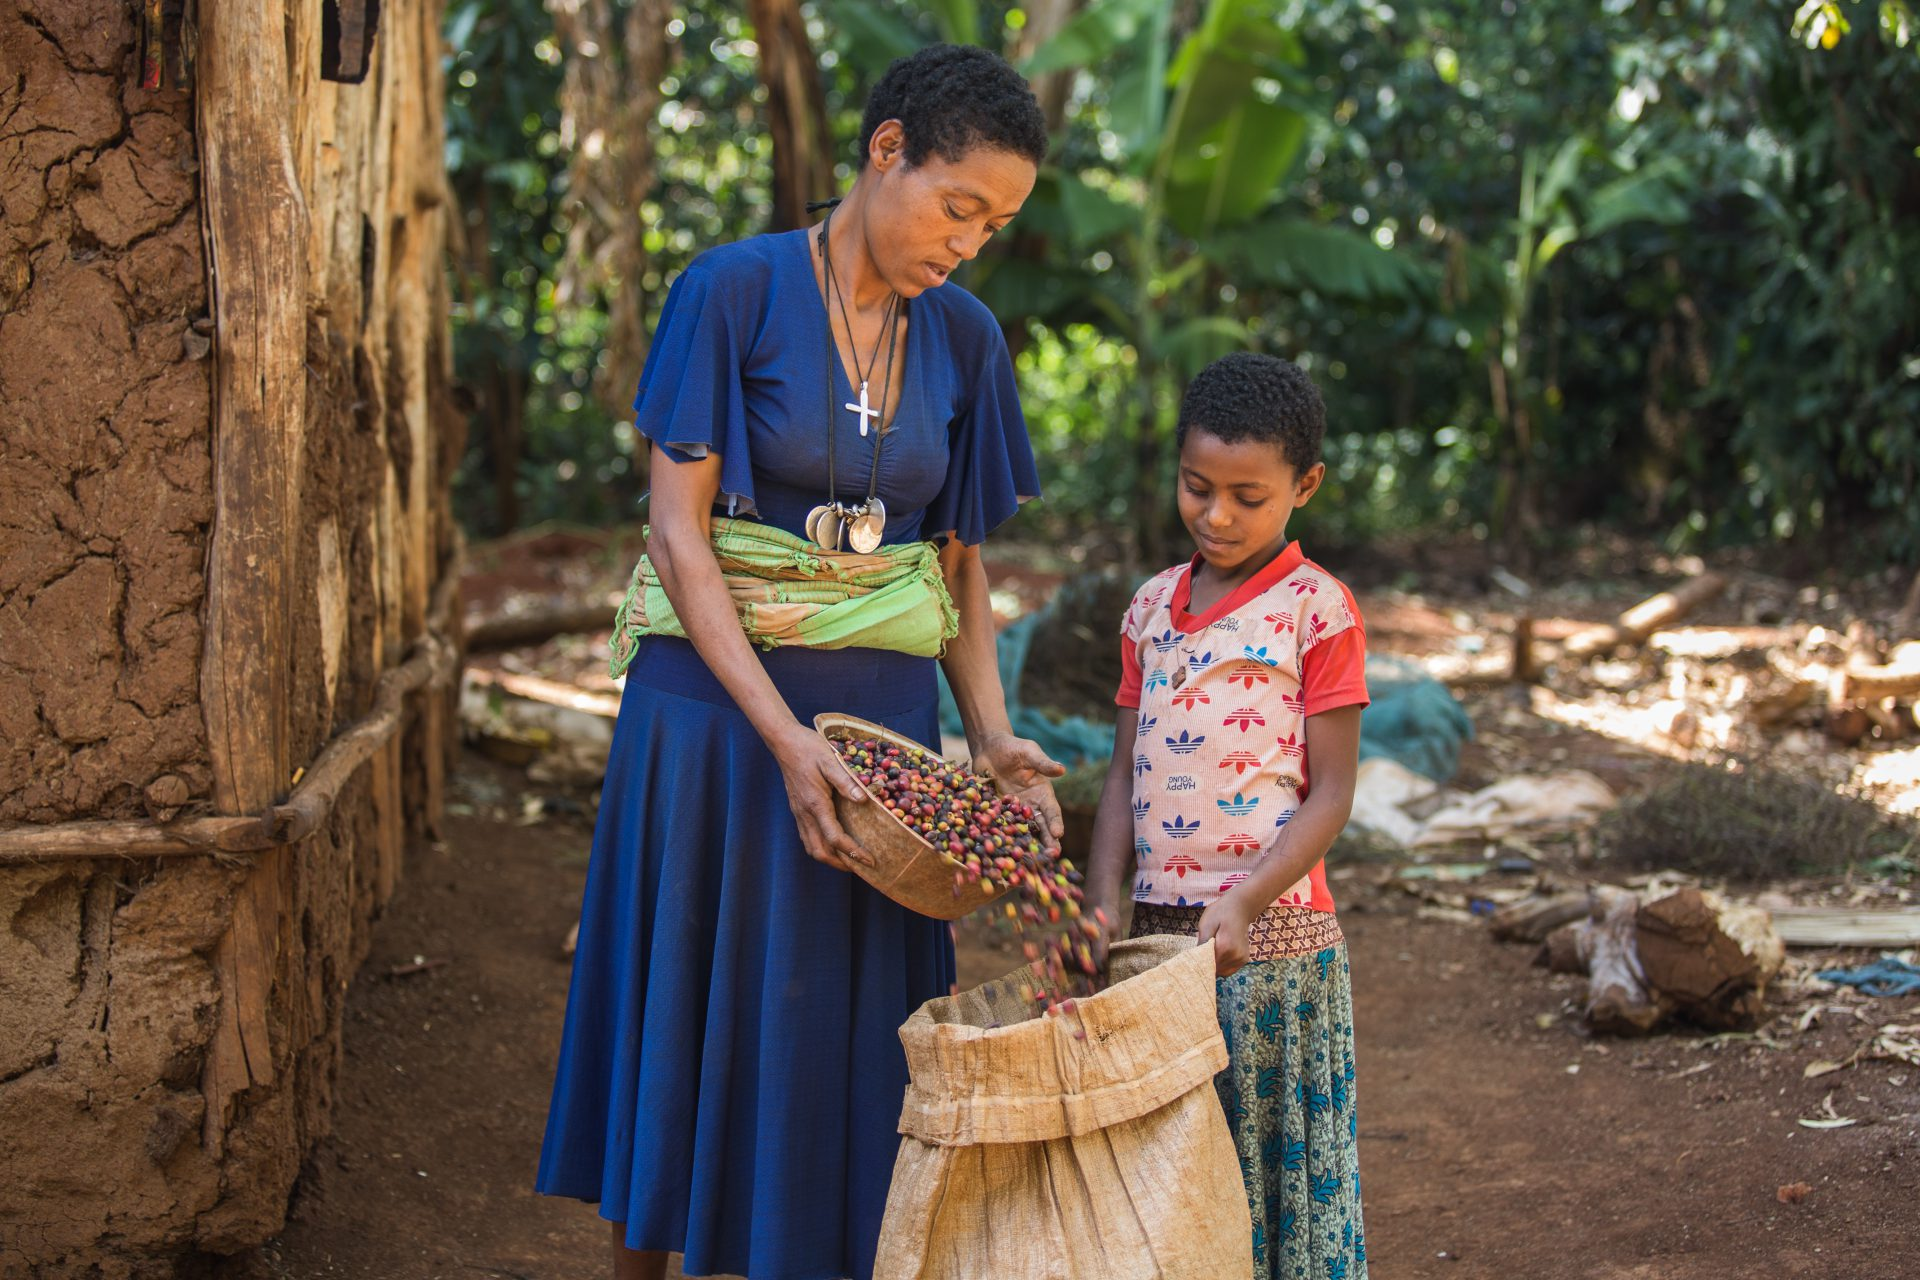 Bosena helps her mother Bernesh Mekonnen, approximately 40, with storing the coffee beans picked on their farm in Mankusa, West Gojjam, Ethiopia. ©WaterAid/GenayeEshetu